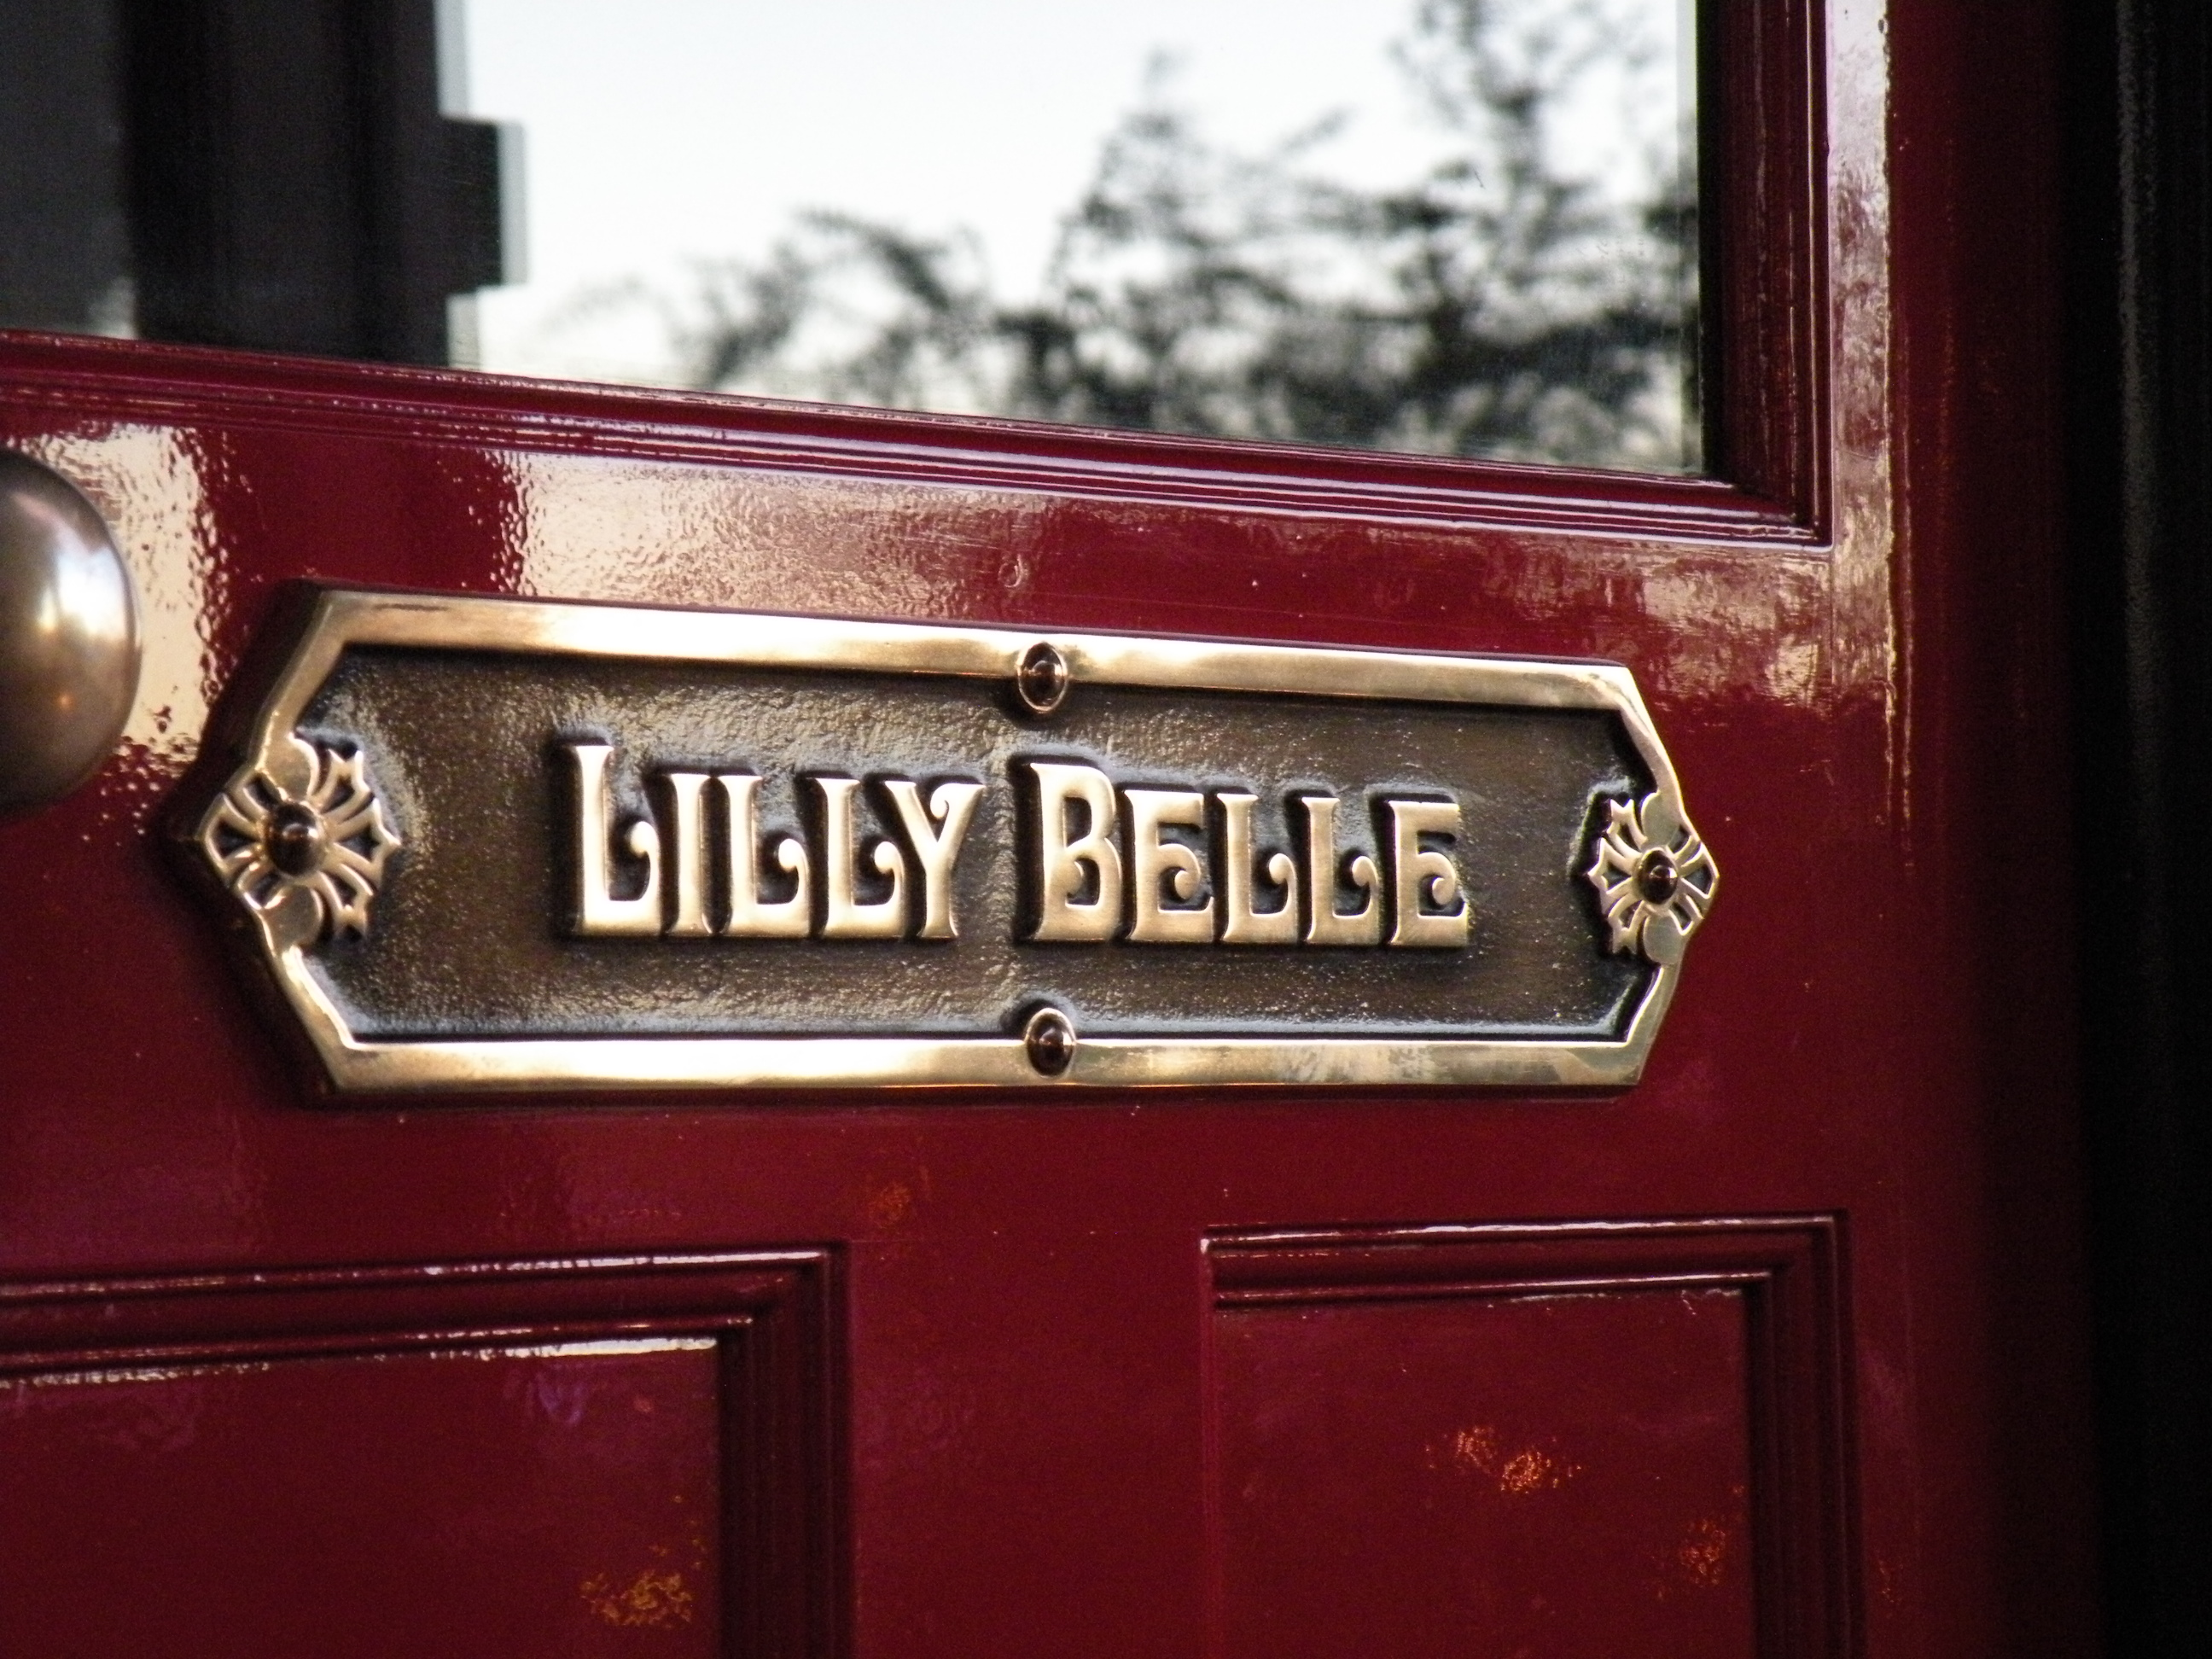 Lilly Belle sign